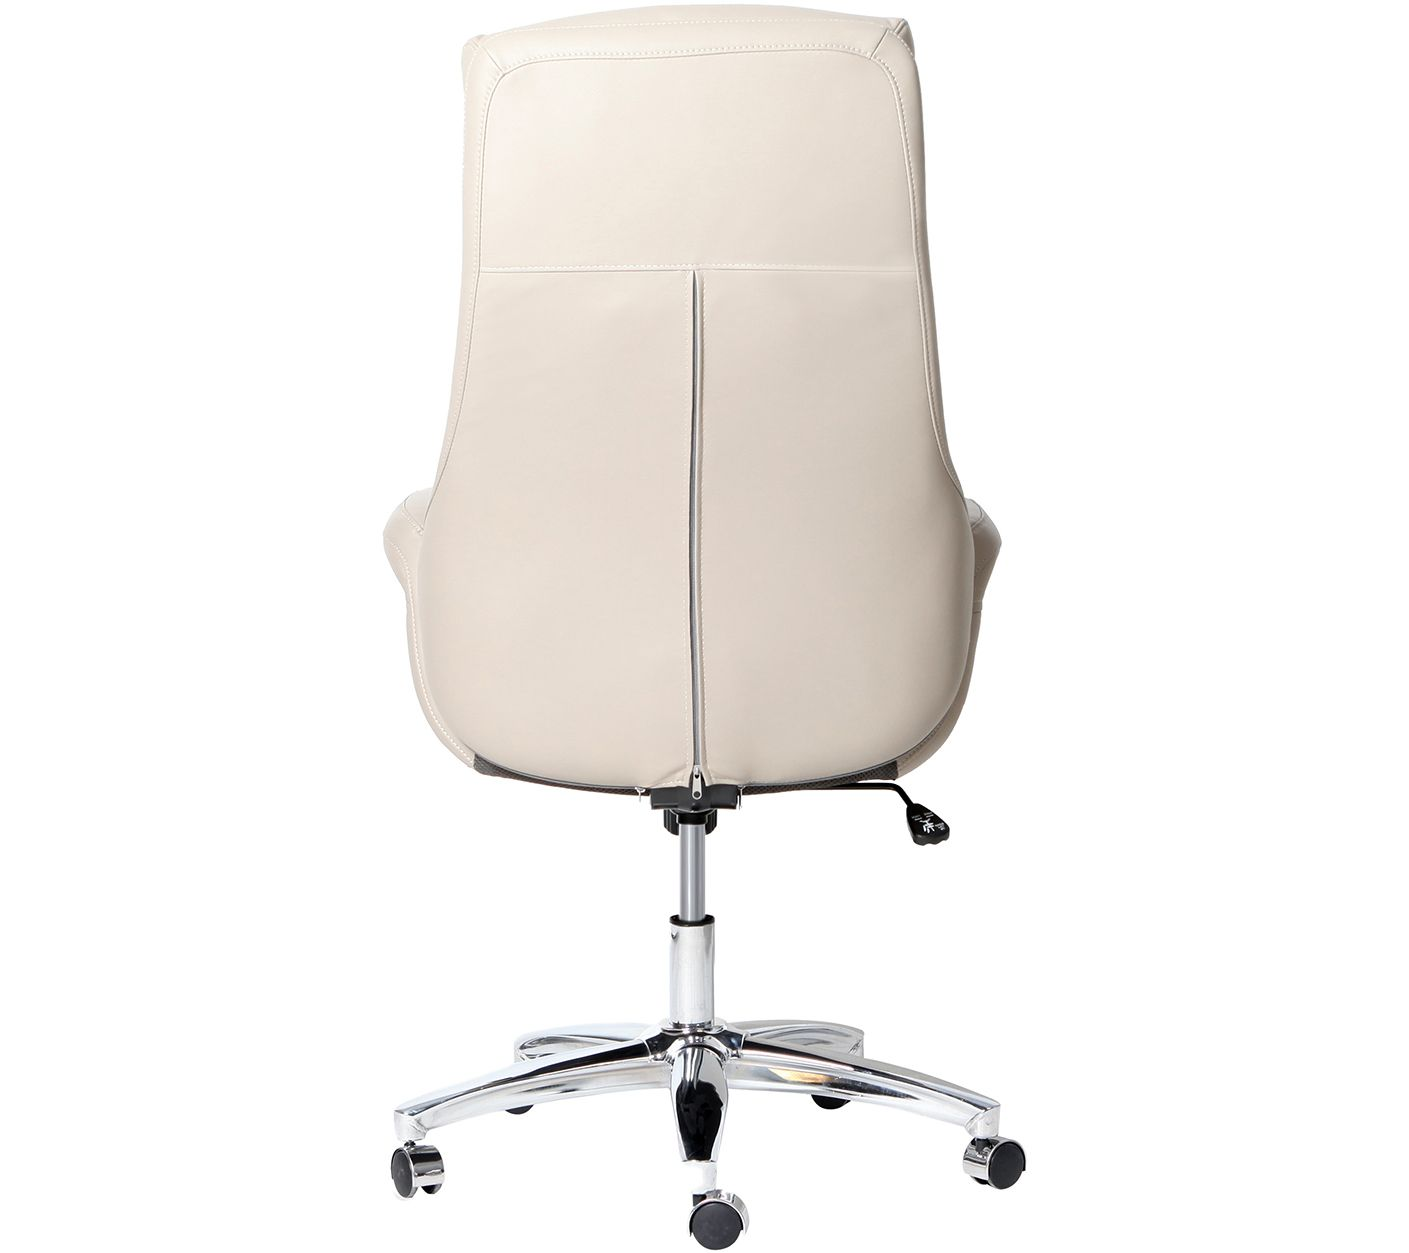 office chair qvc recliner new zealand techni mobili ergonomic with lumbar support com